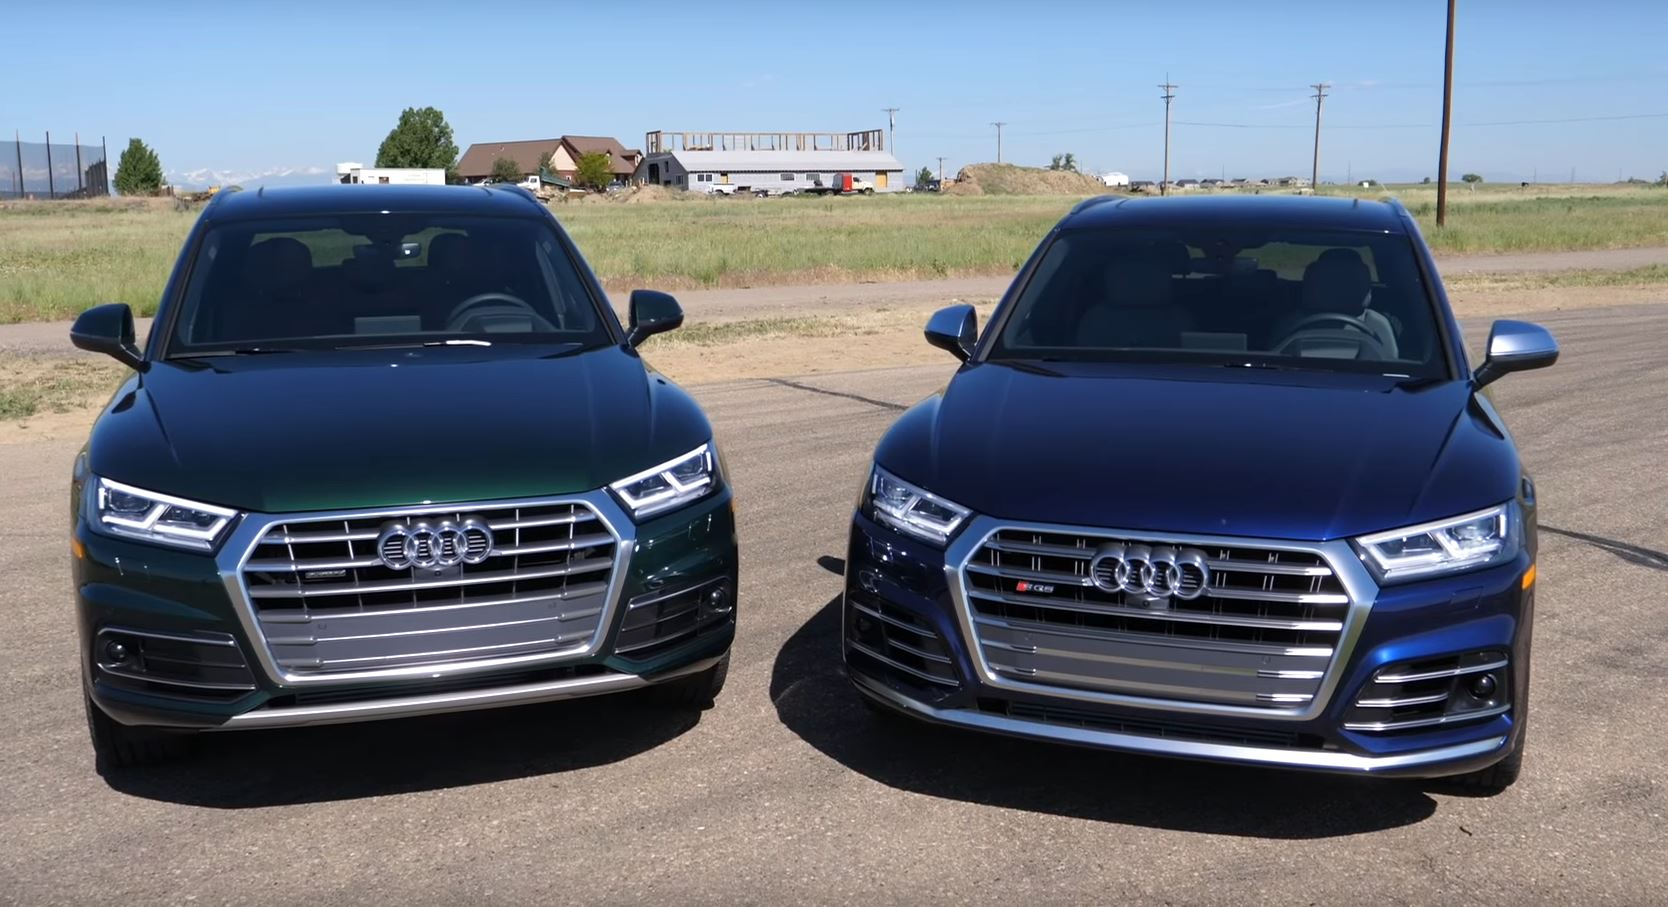 Audi Sq5 Vs Q5 Comparison Includes Performance Test